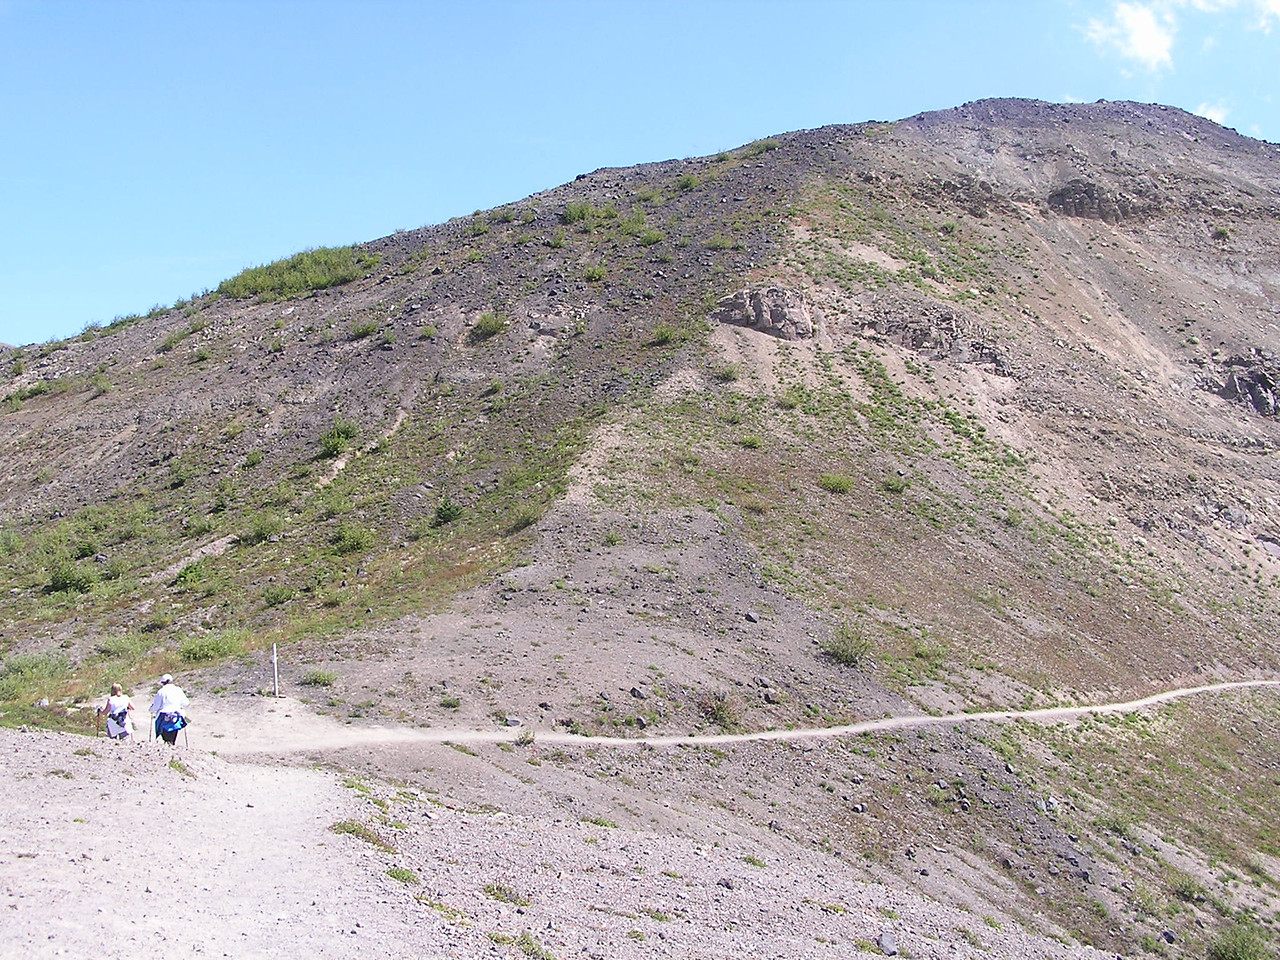 The section of the trail that heads south along the side of this steep hill is called 'Devil's Elbow'.